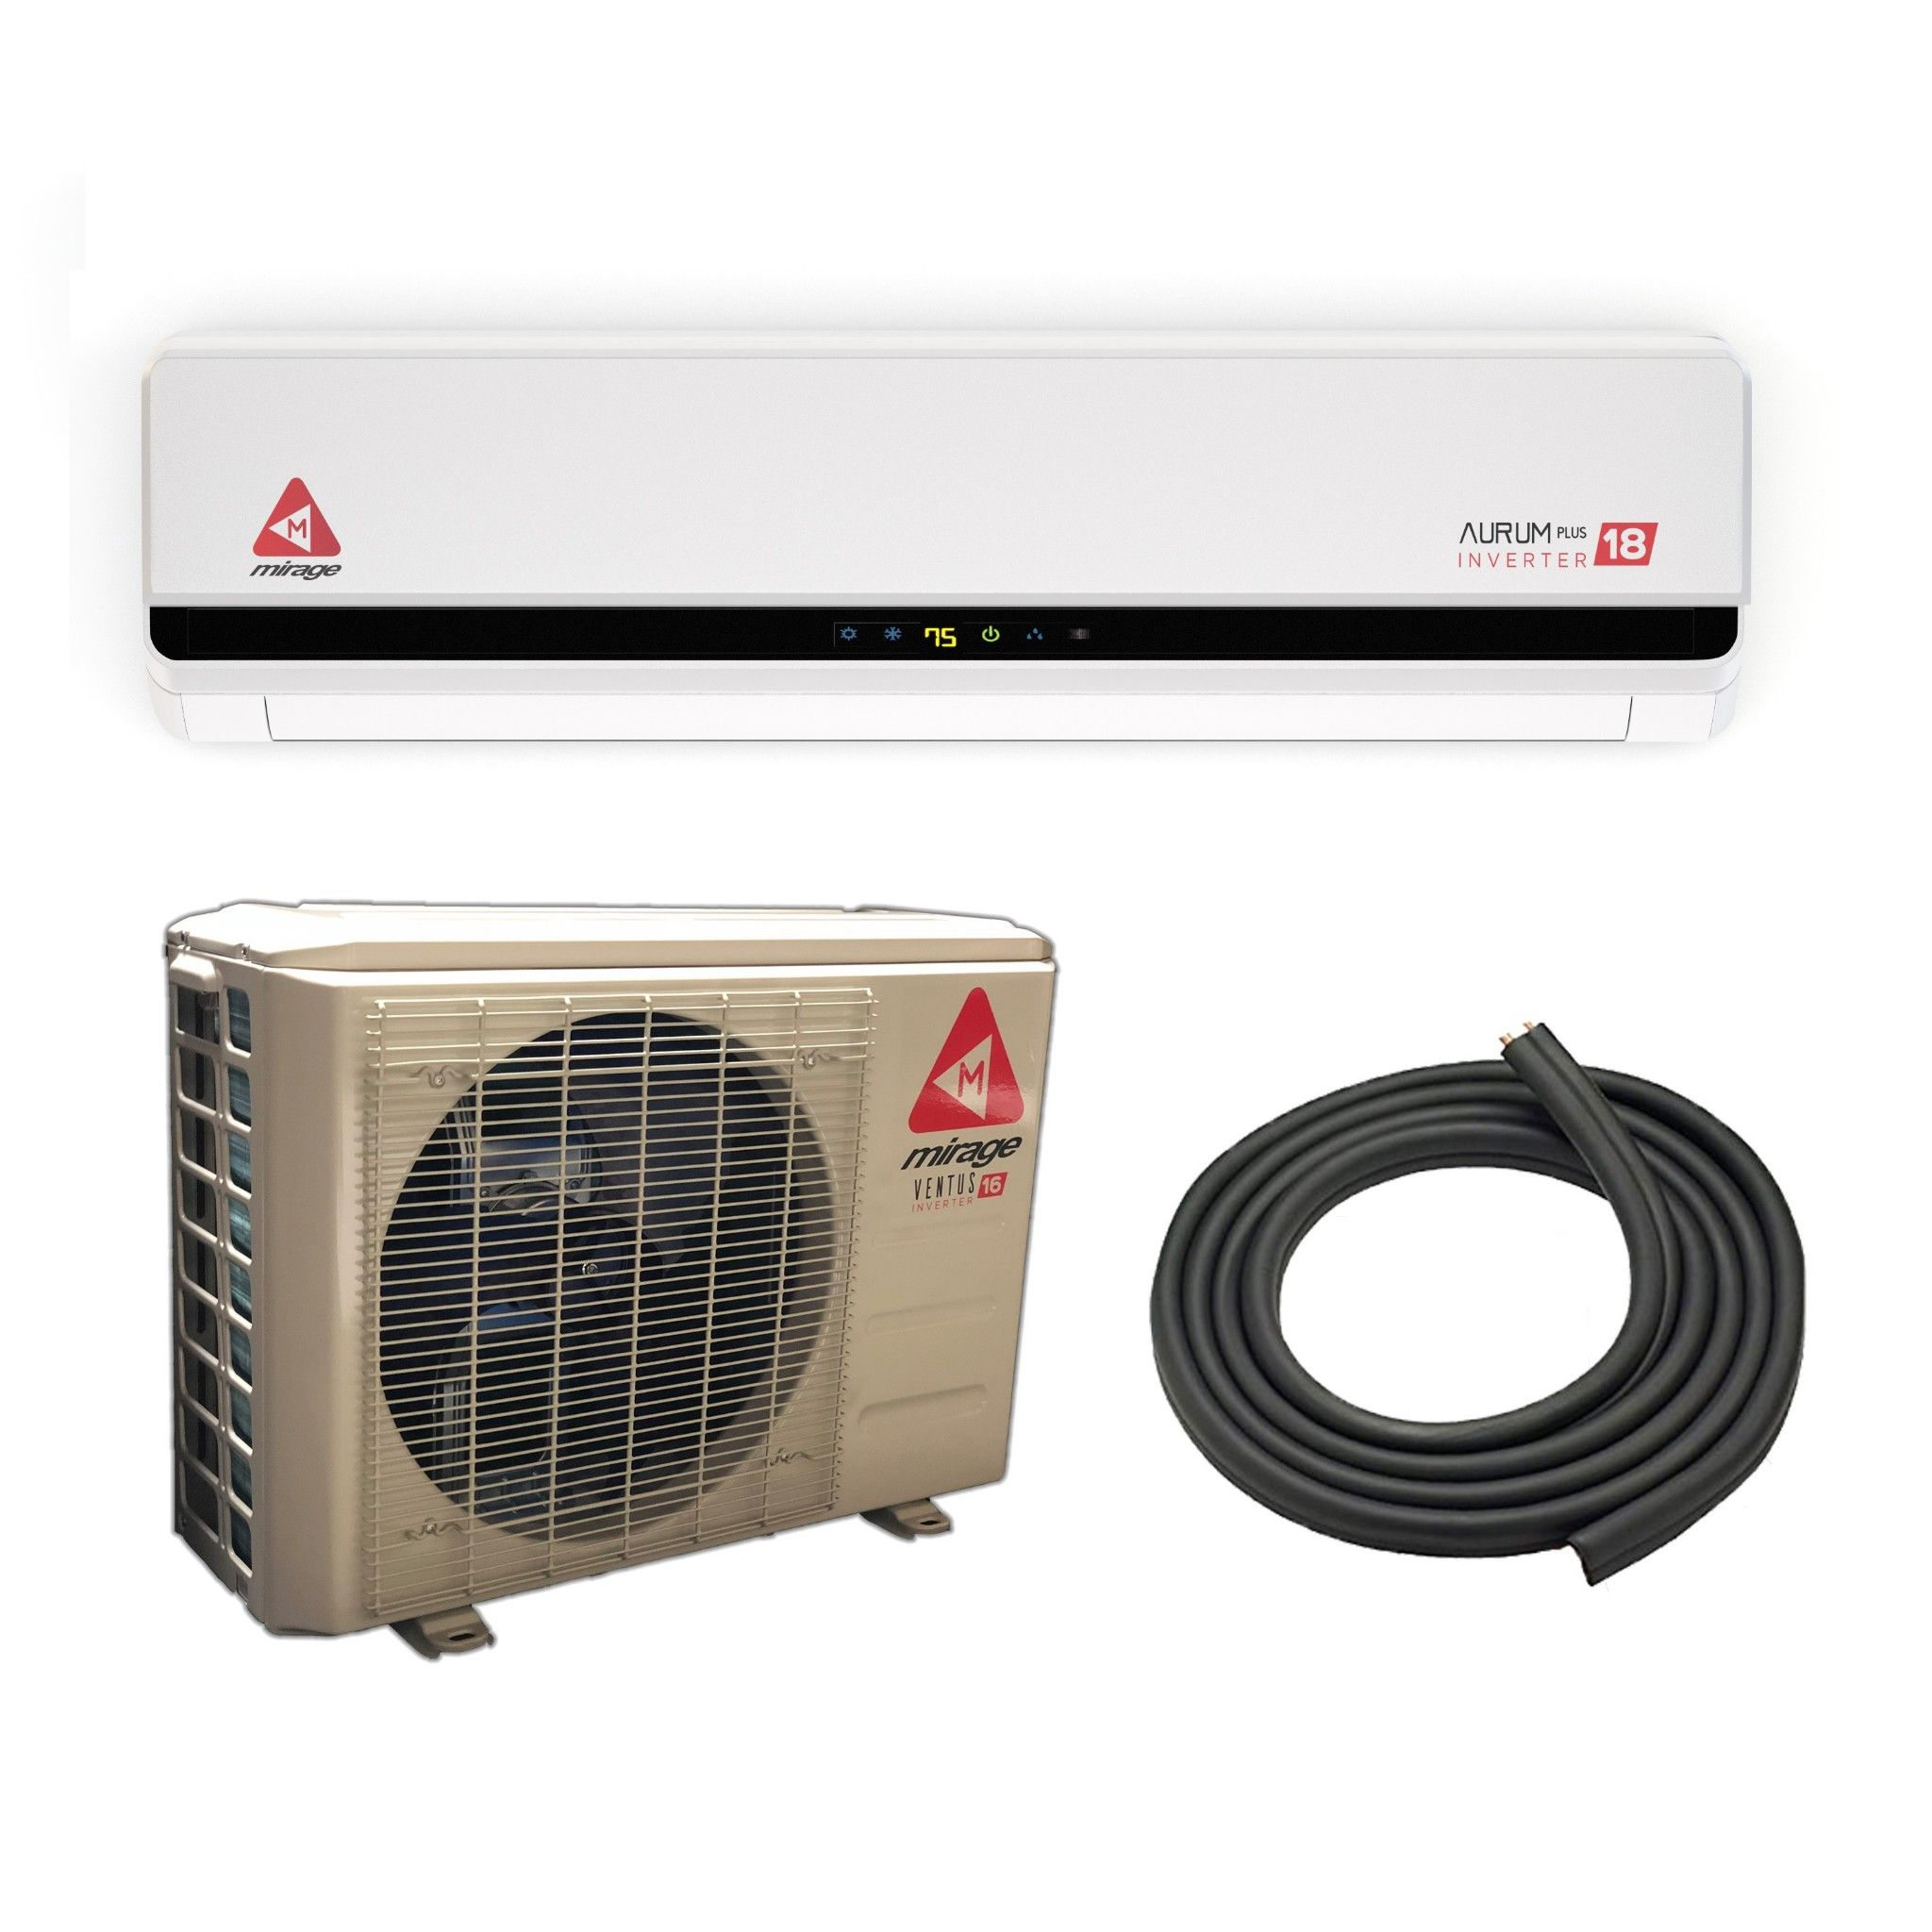 220v Inverter Mini Split Heat Pump In 2020 Heat Pump System Heat Pump Ductless Mini Split